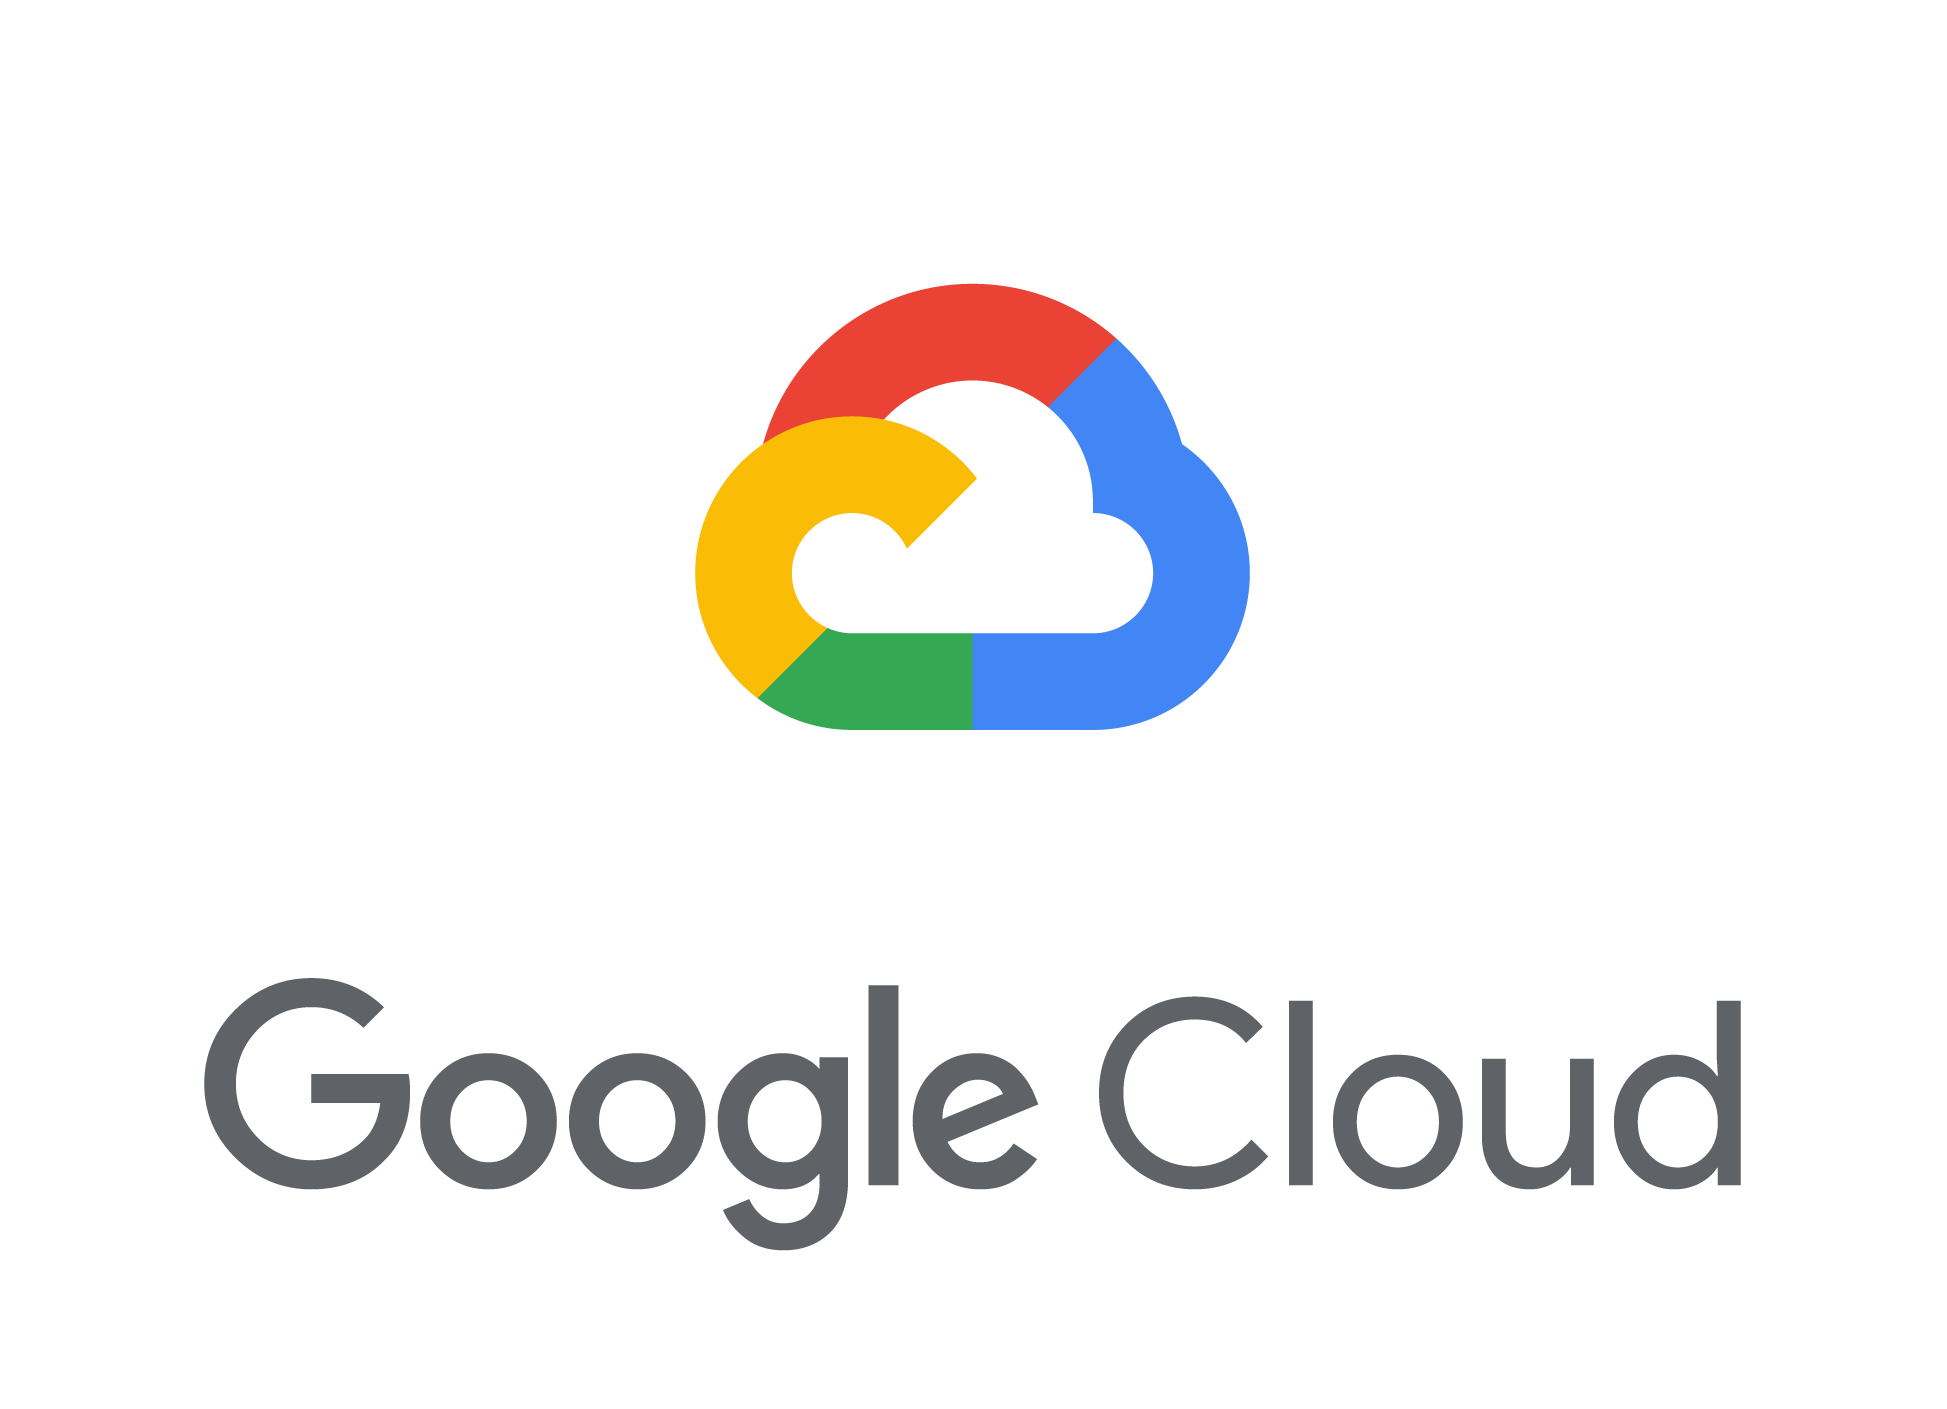 Google Cloud Logo 2019